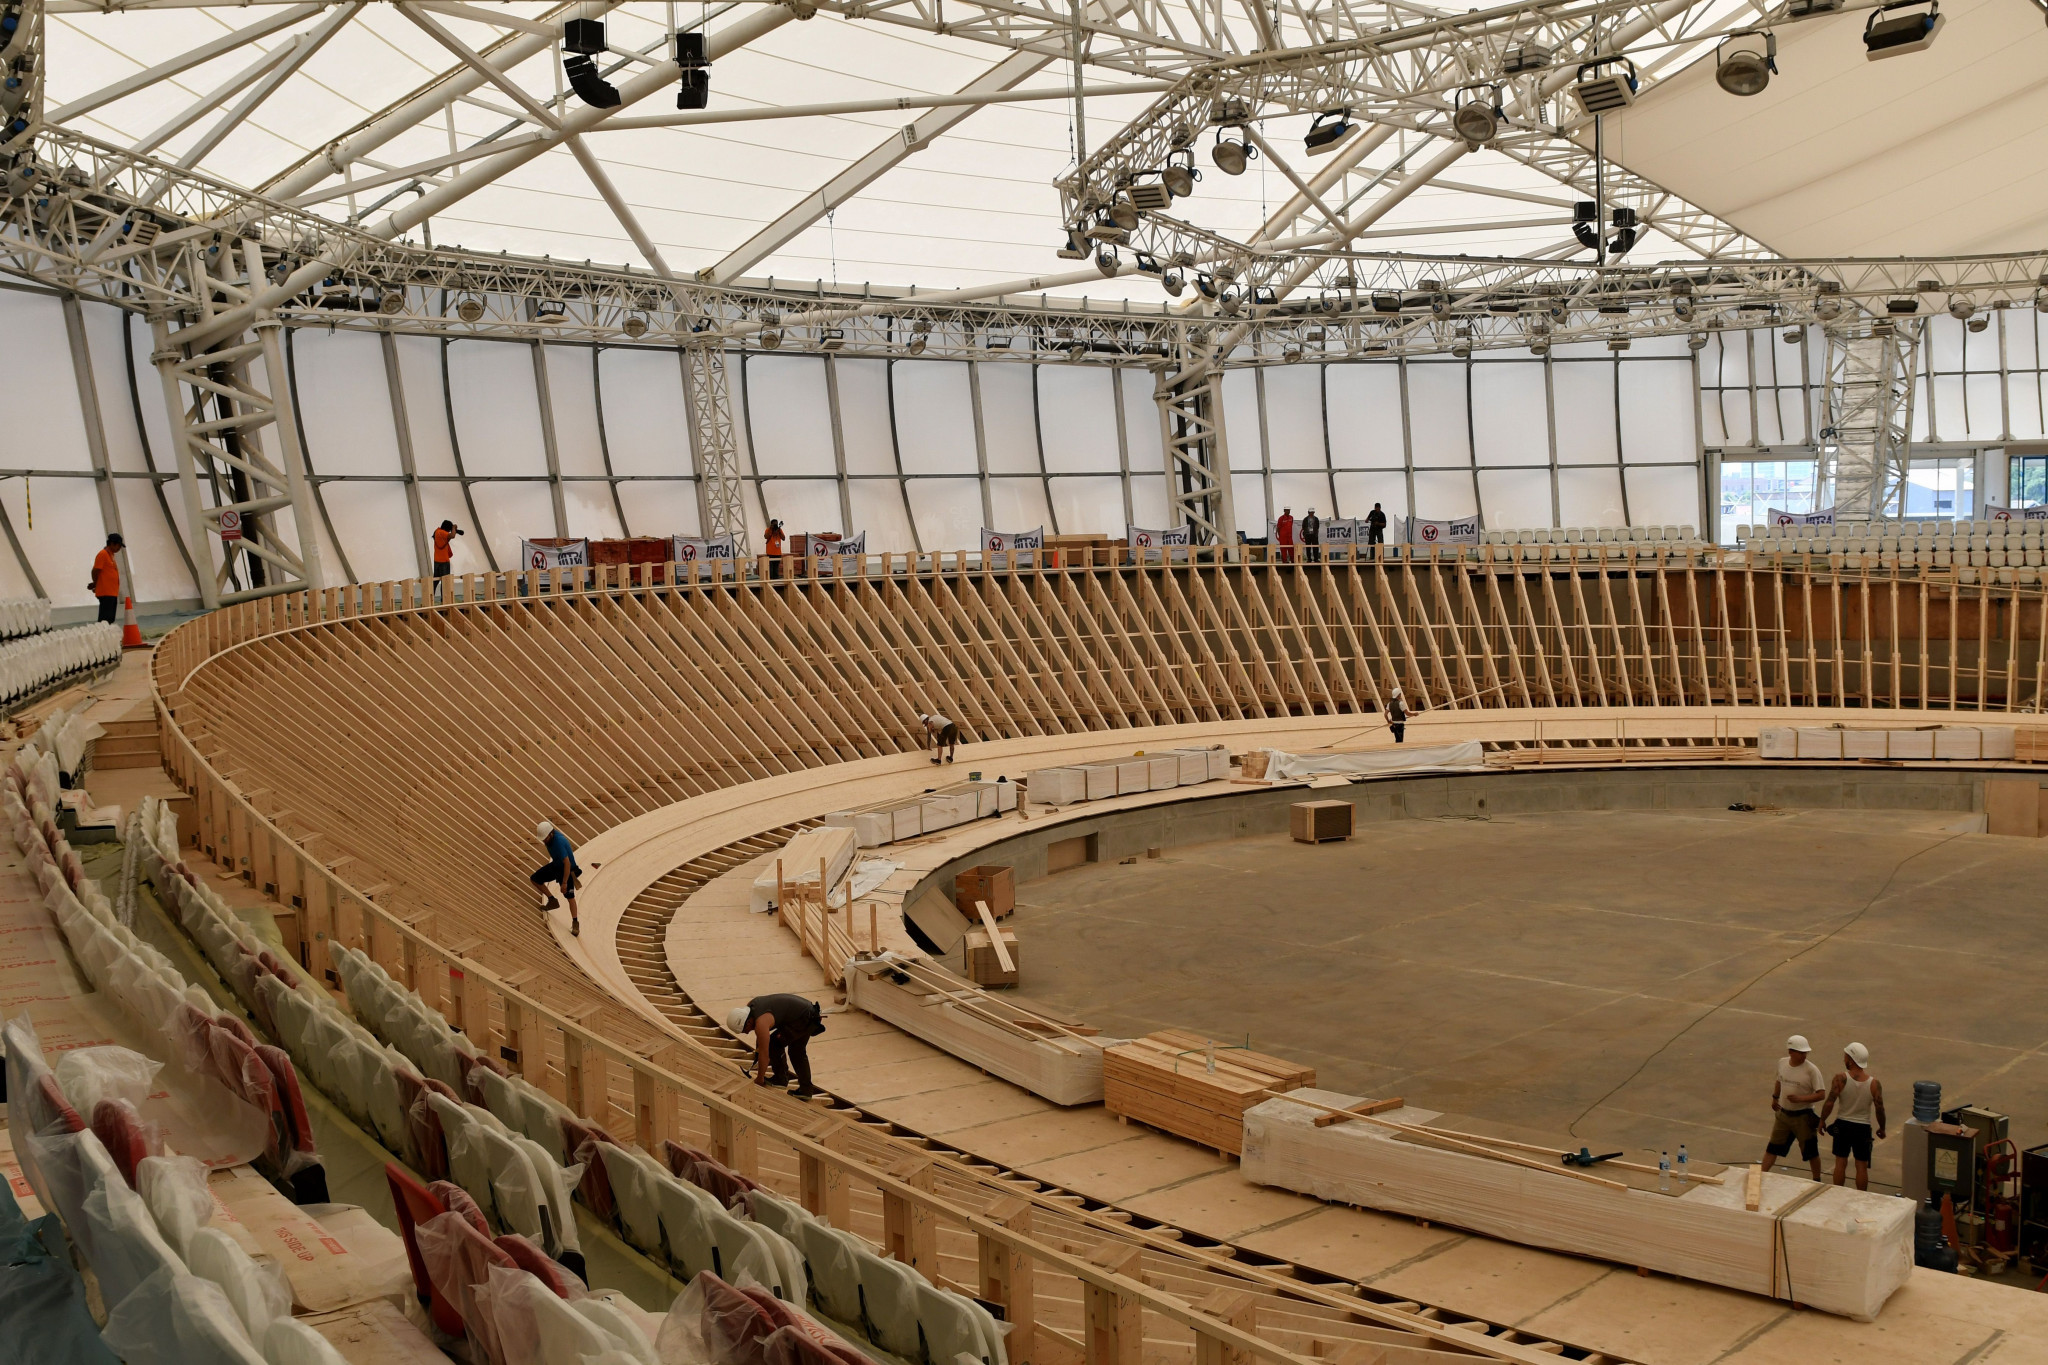 Workers build the track at the new velodrome in April ©Getty Images